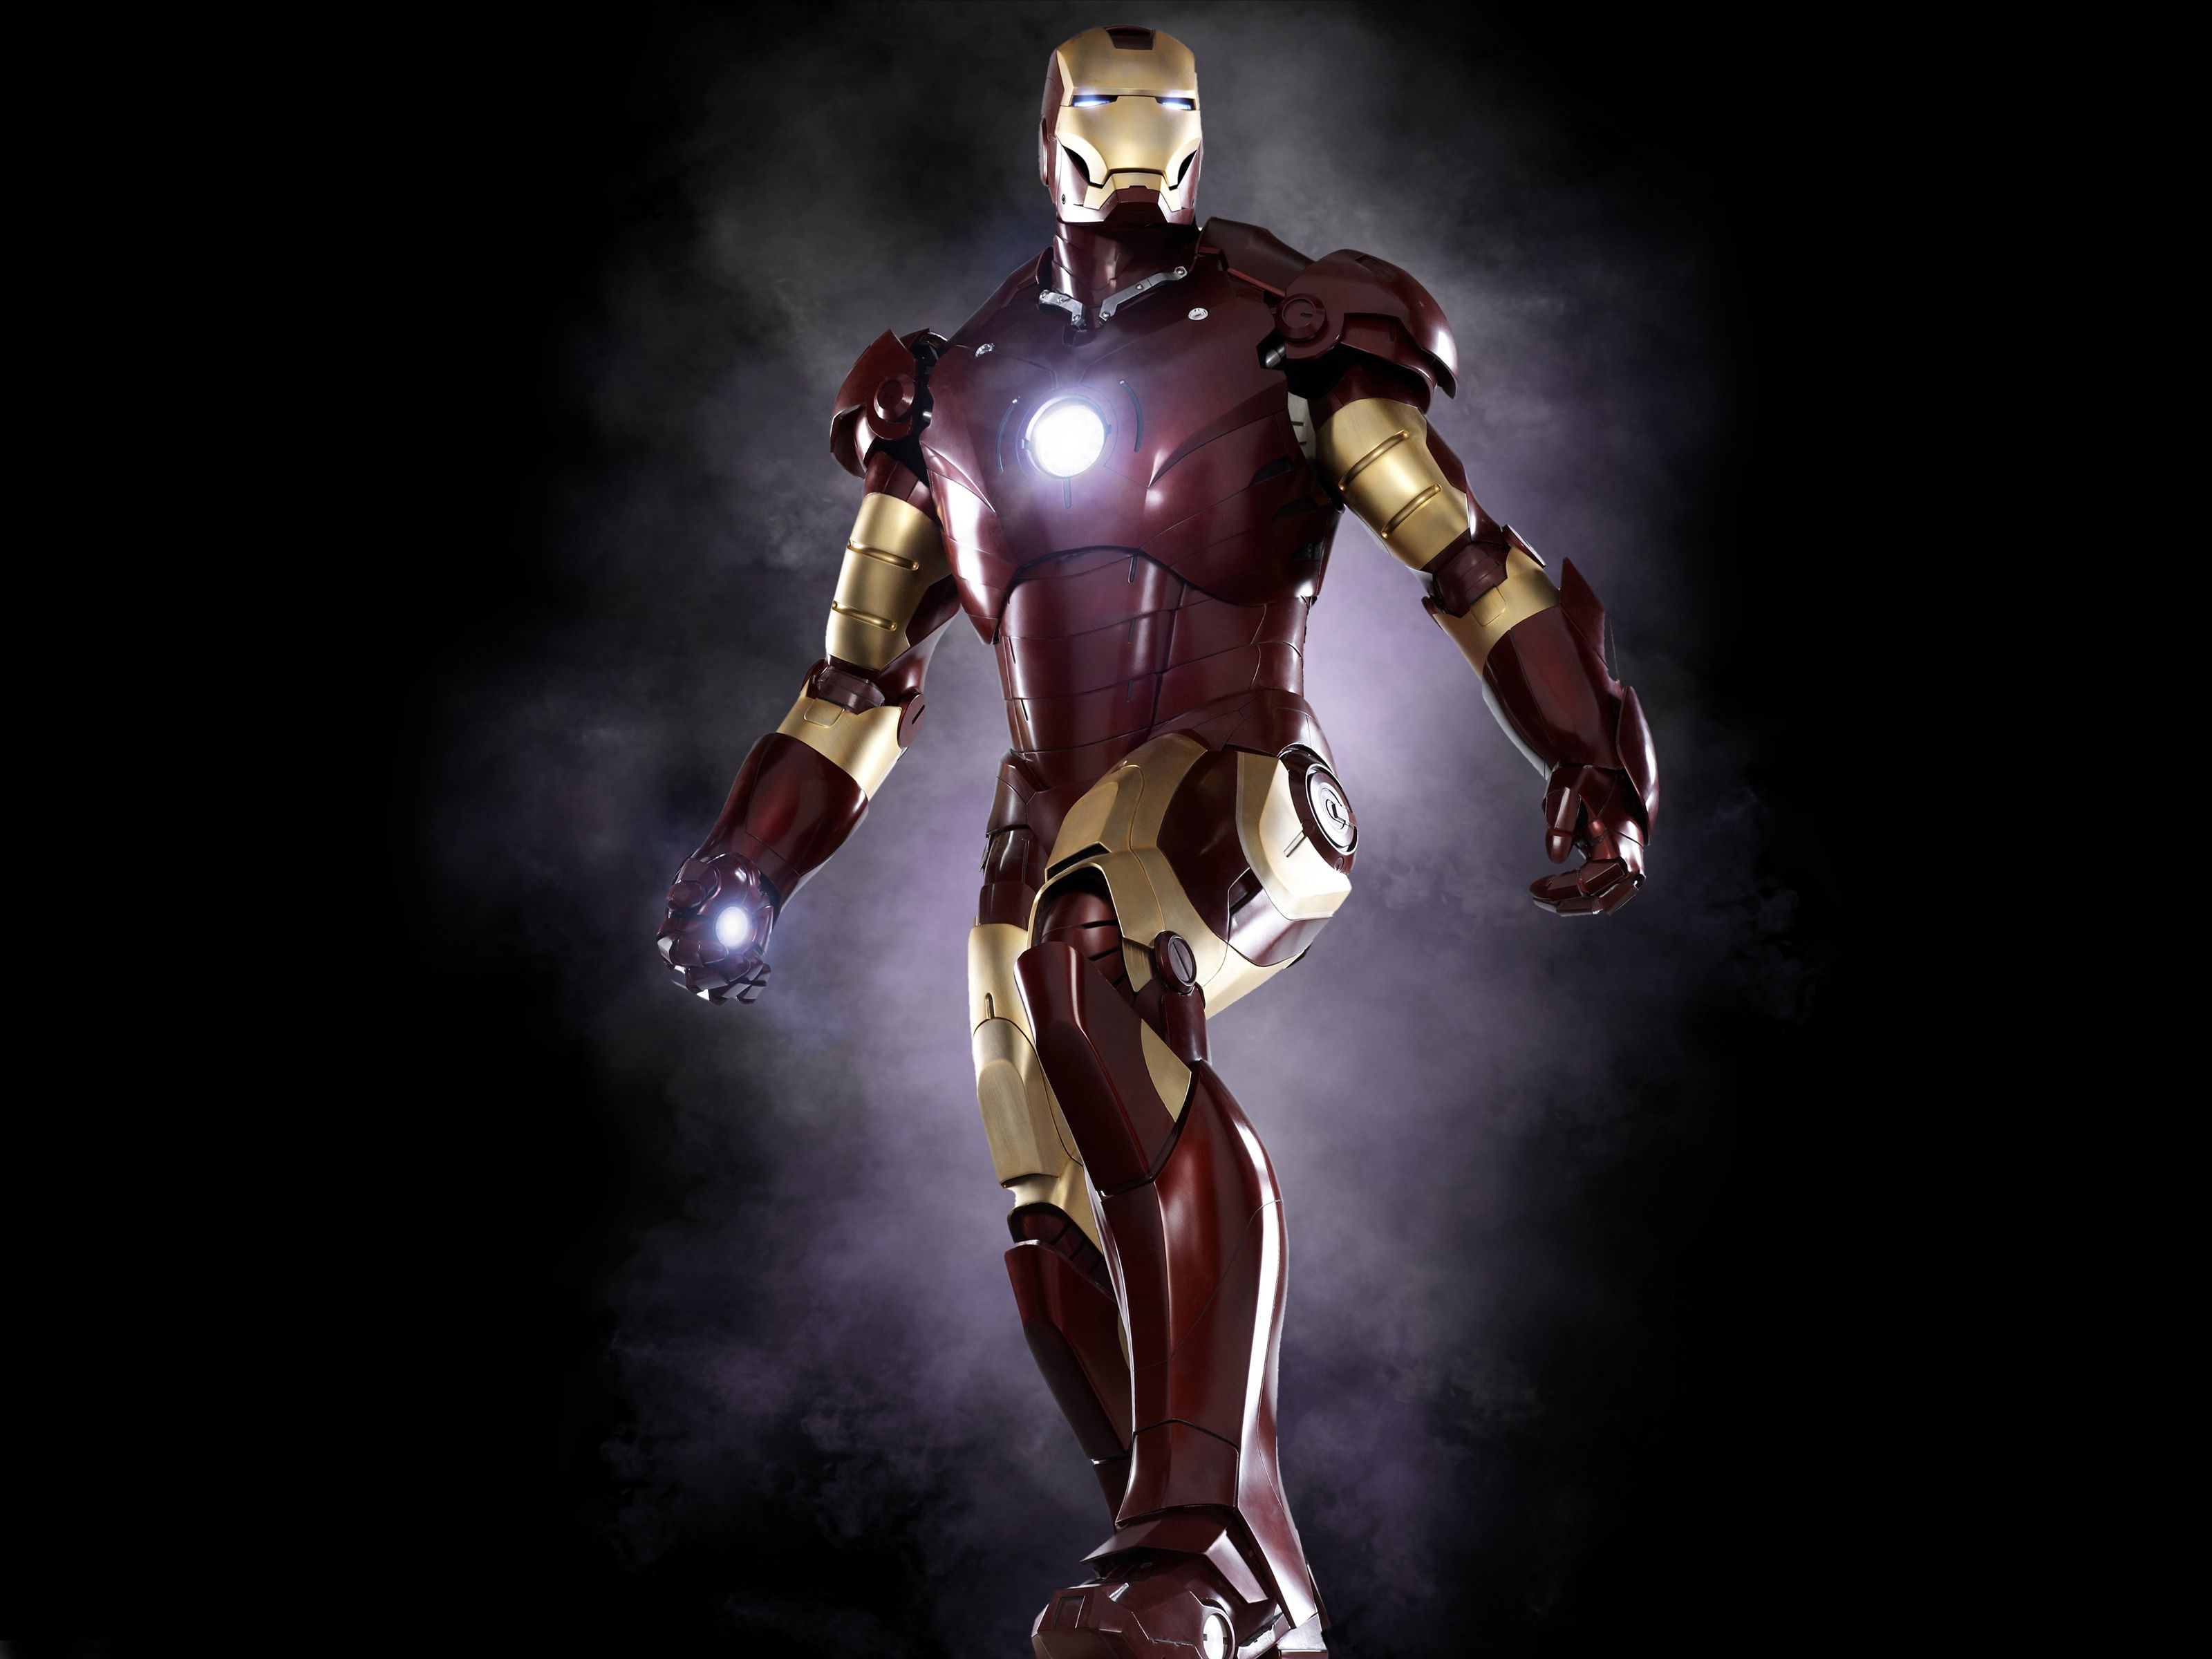 Wallpaper download action - Iron Man H D Wallpaper Collection For Free Download